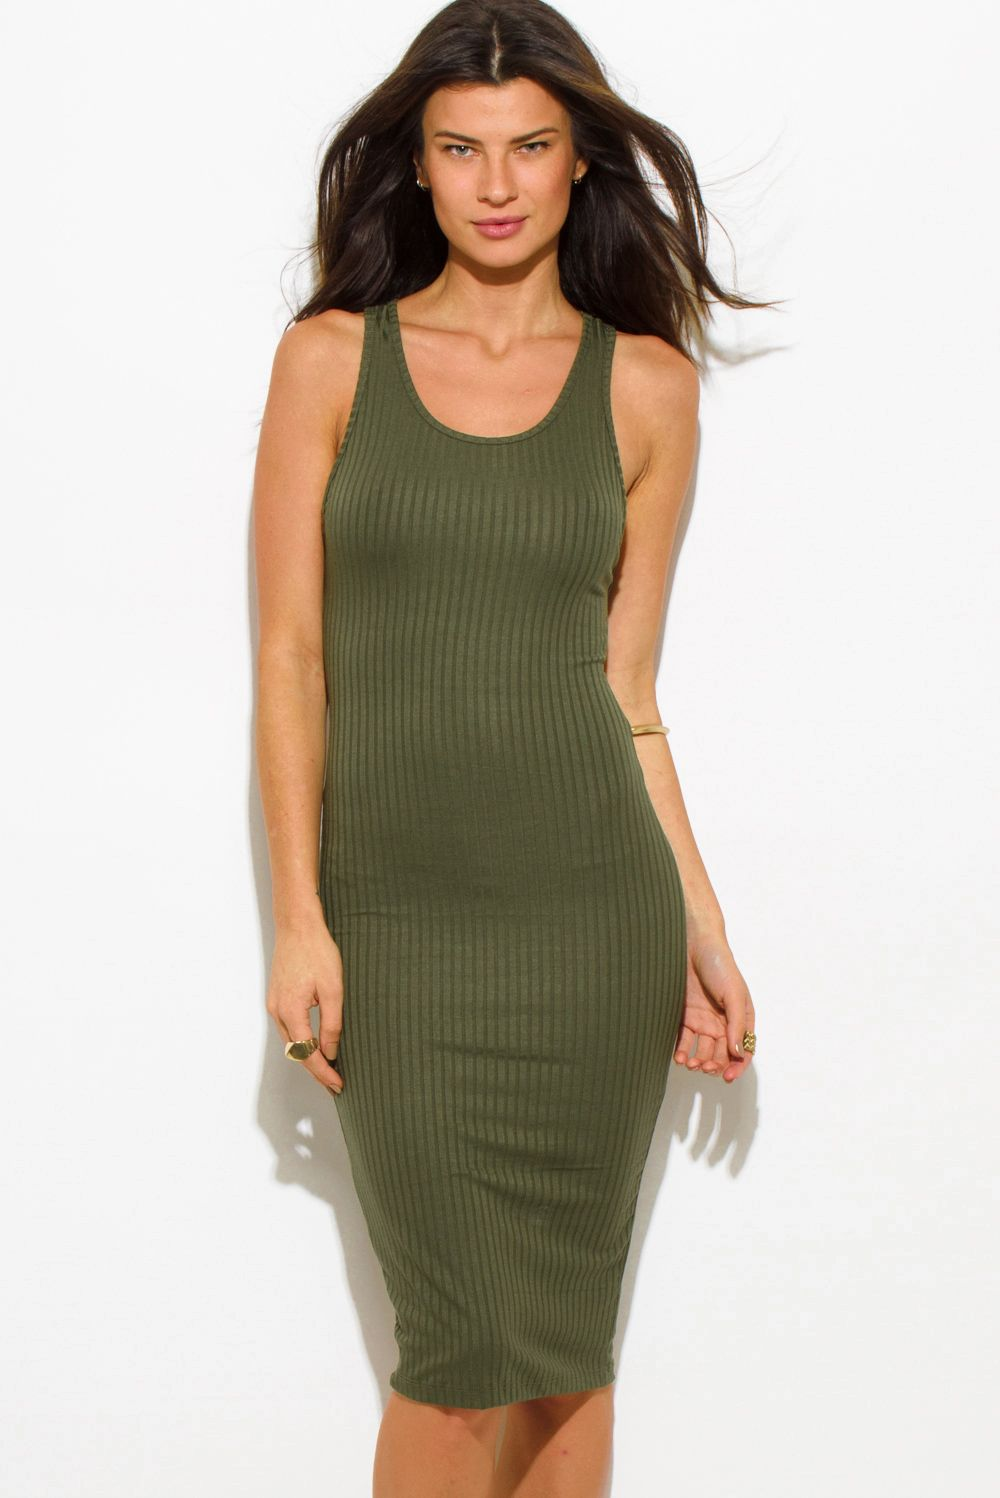 We Met In Fall Olive Green Ribbed Knit Sleeveless Scoop Neck Racer Back Bodycon Fitted Club Midi D Cheap Midi Dress Fitted Knee Length Dress Army Green Dress [ 1498 x 1000 Pixel ]